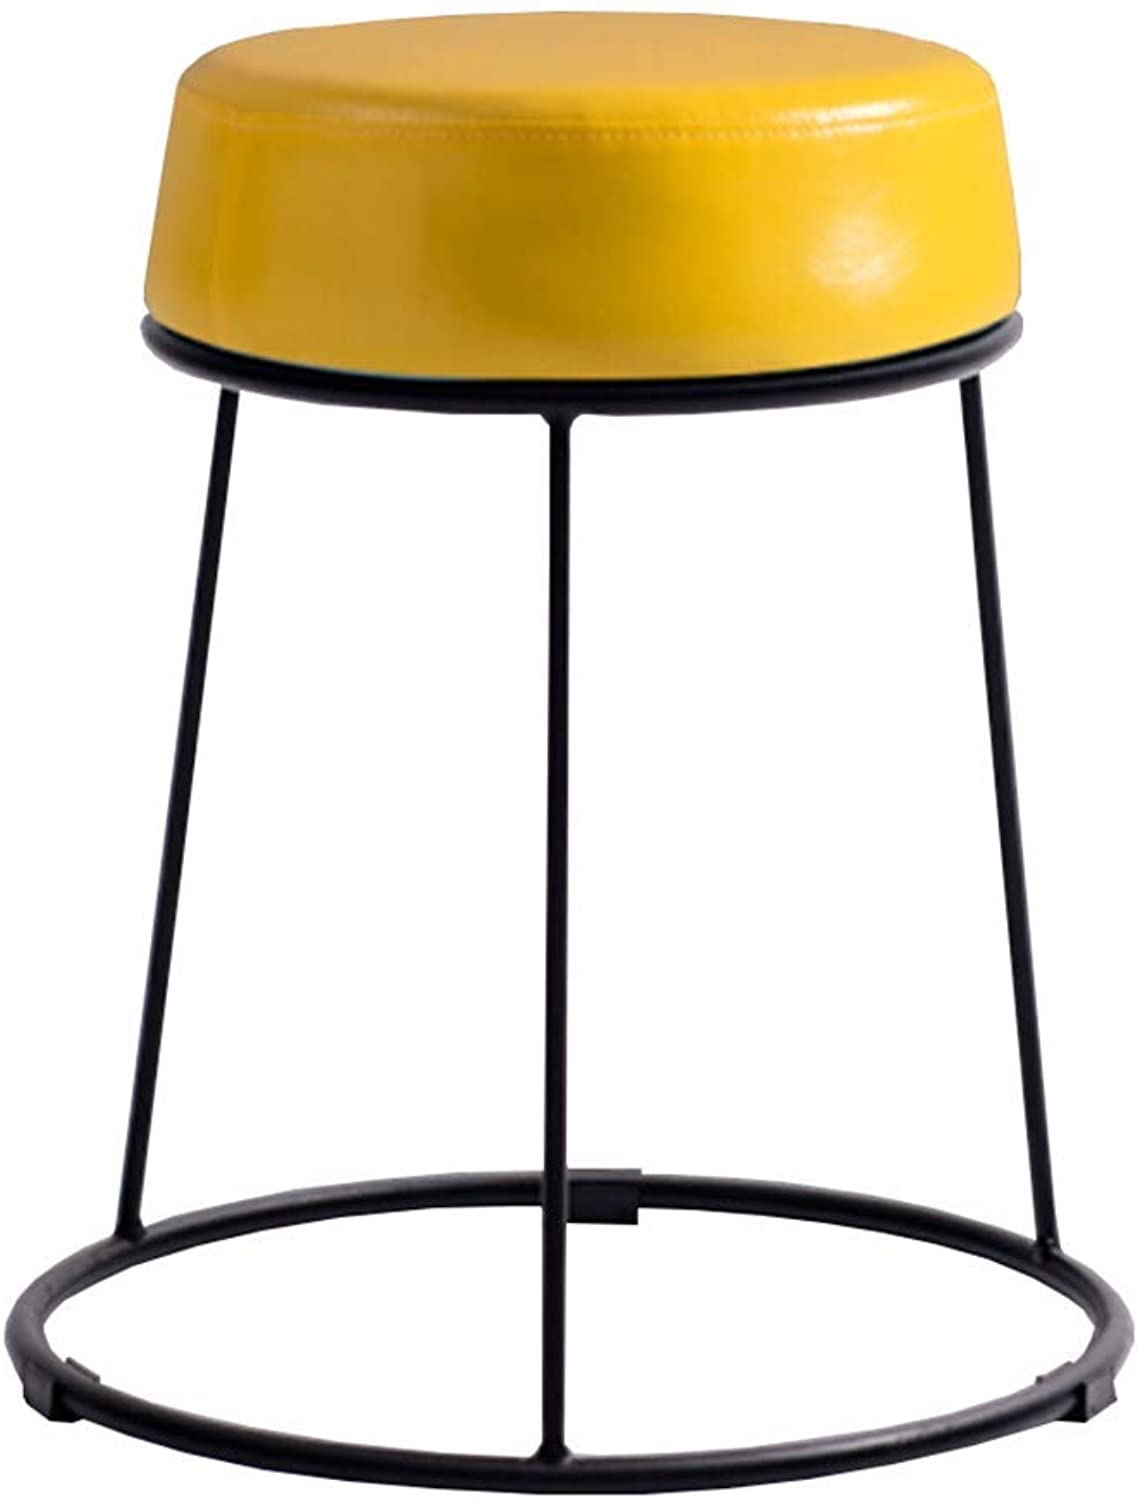 ZHAOYONGLI Stool Simple Fashion Home shoes Bench Wrought Iron Stackable Round Sofa Bench Multicolor Optional Creative Solid Durable Long Lasting (color   Yellow, Size   38.5  46.5cm)